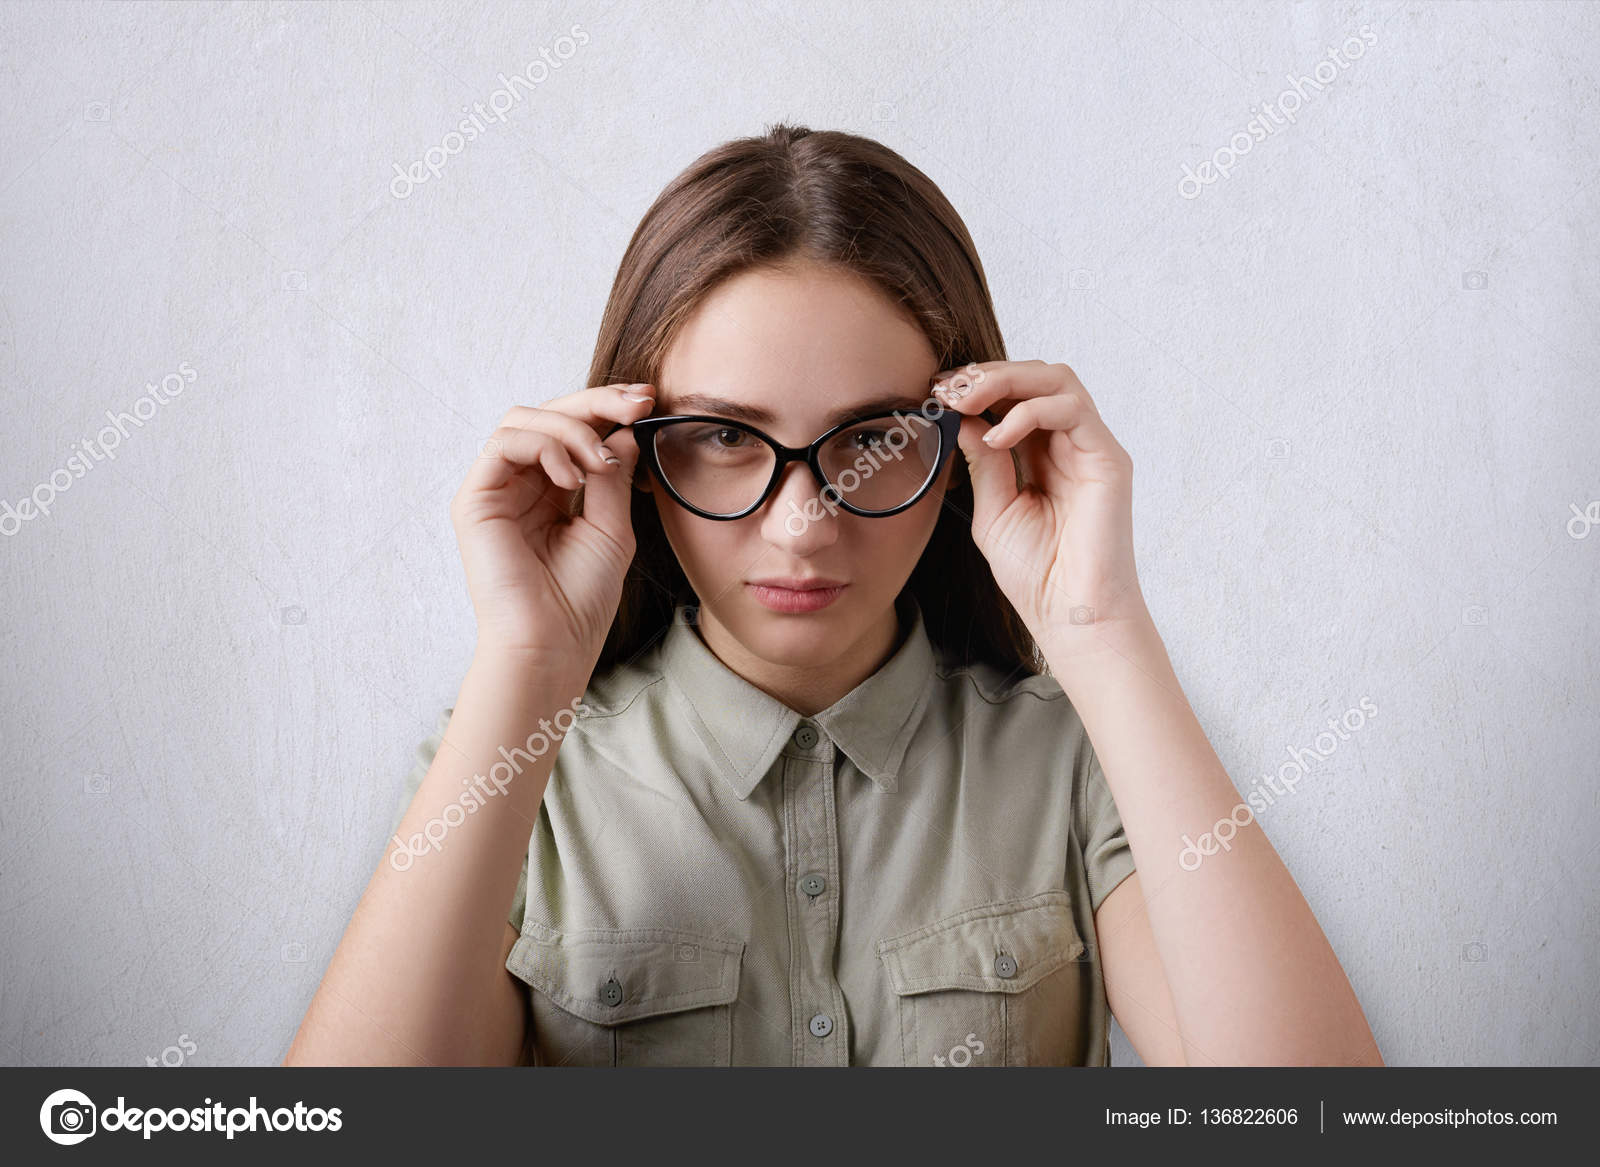 1bac485dc57 A portrait of beautiful girl wearing shirt having long hair isolated over  grey background wearing big glasses touching her glasses with her hands  having a ...